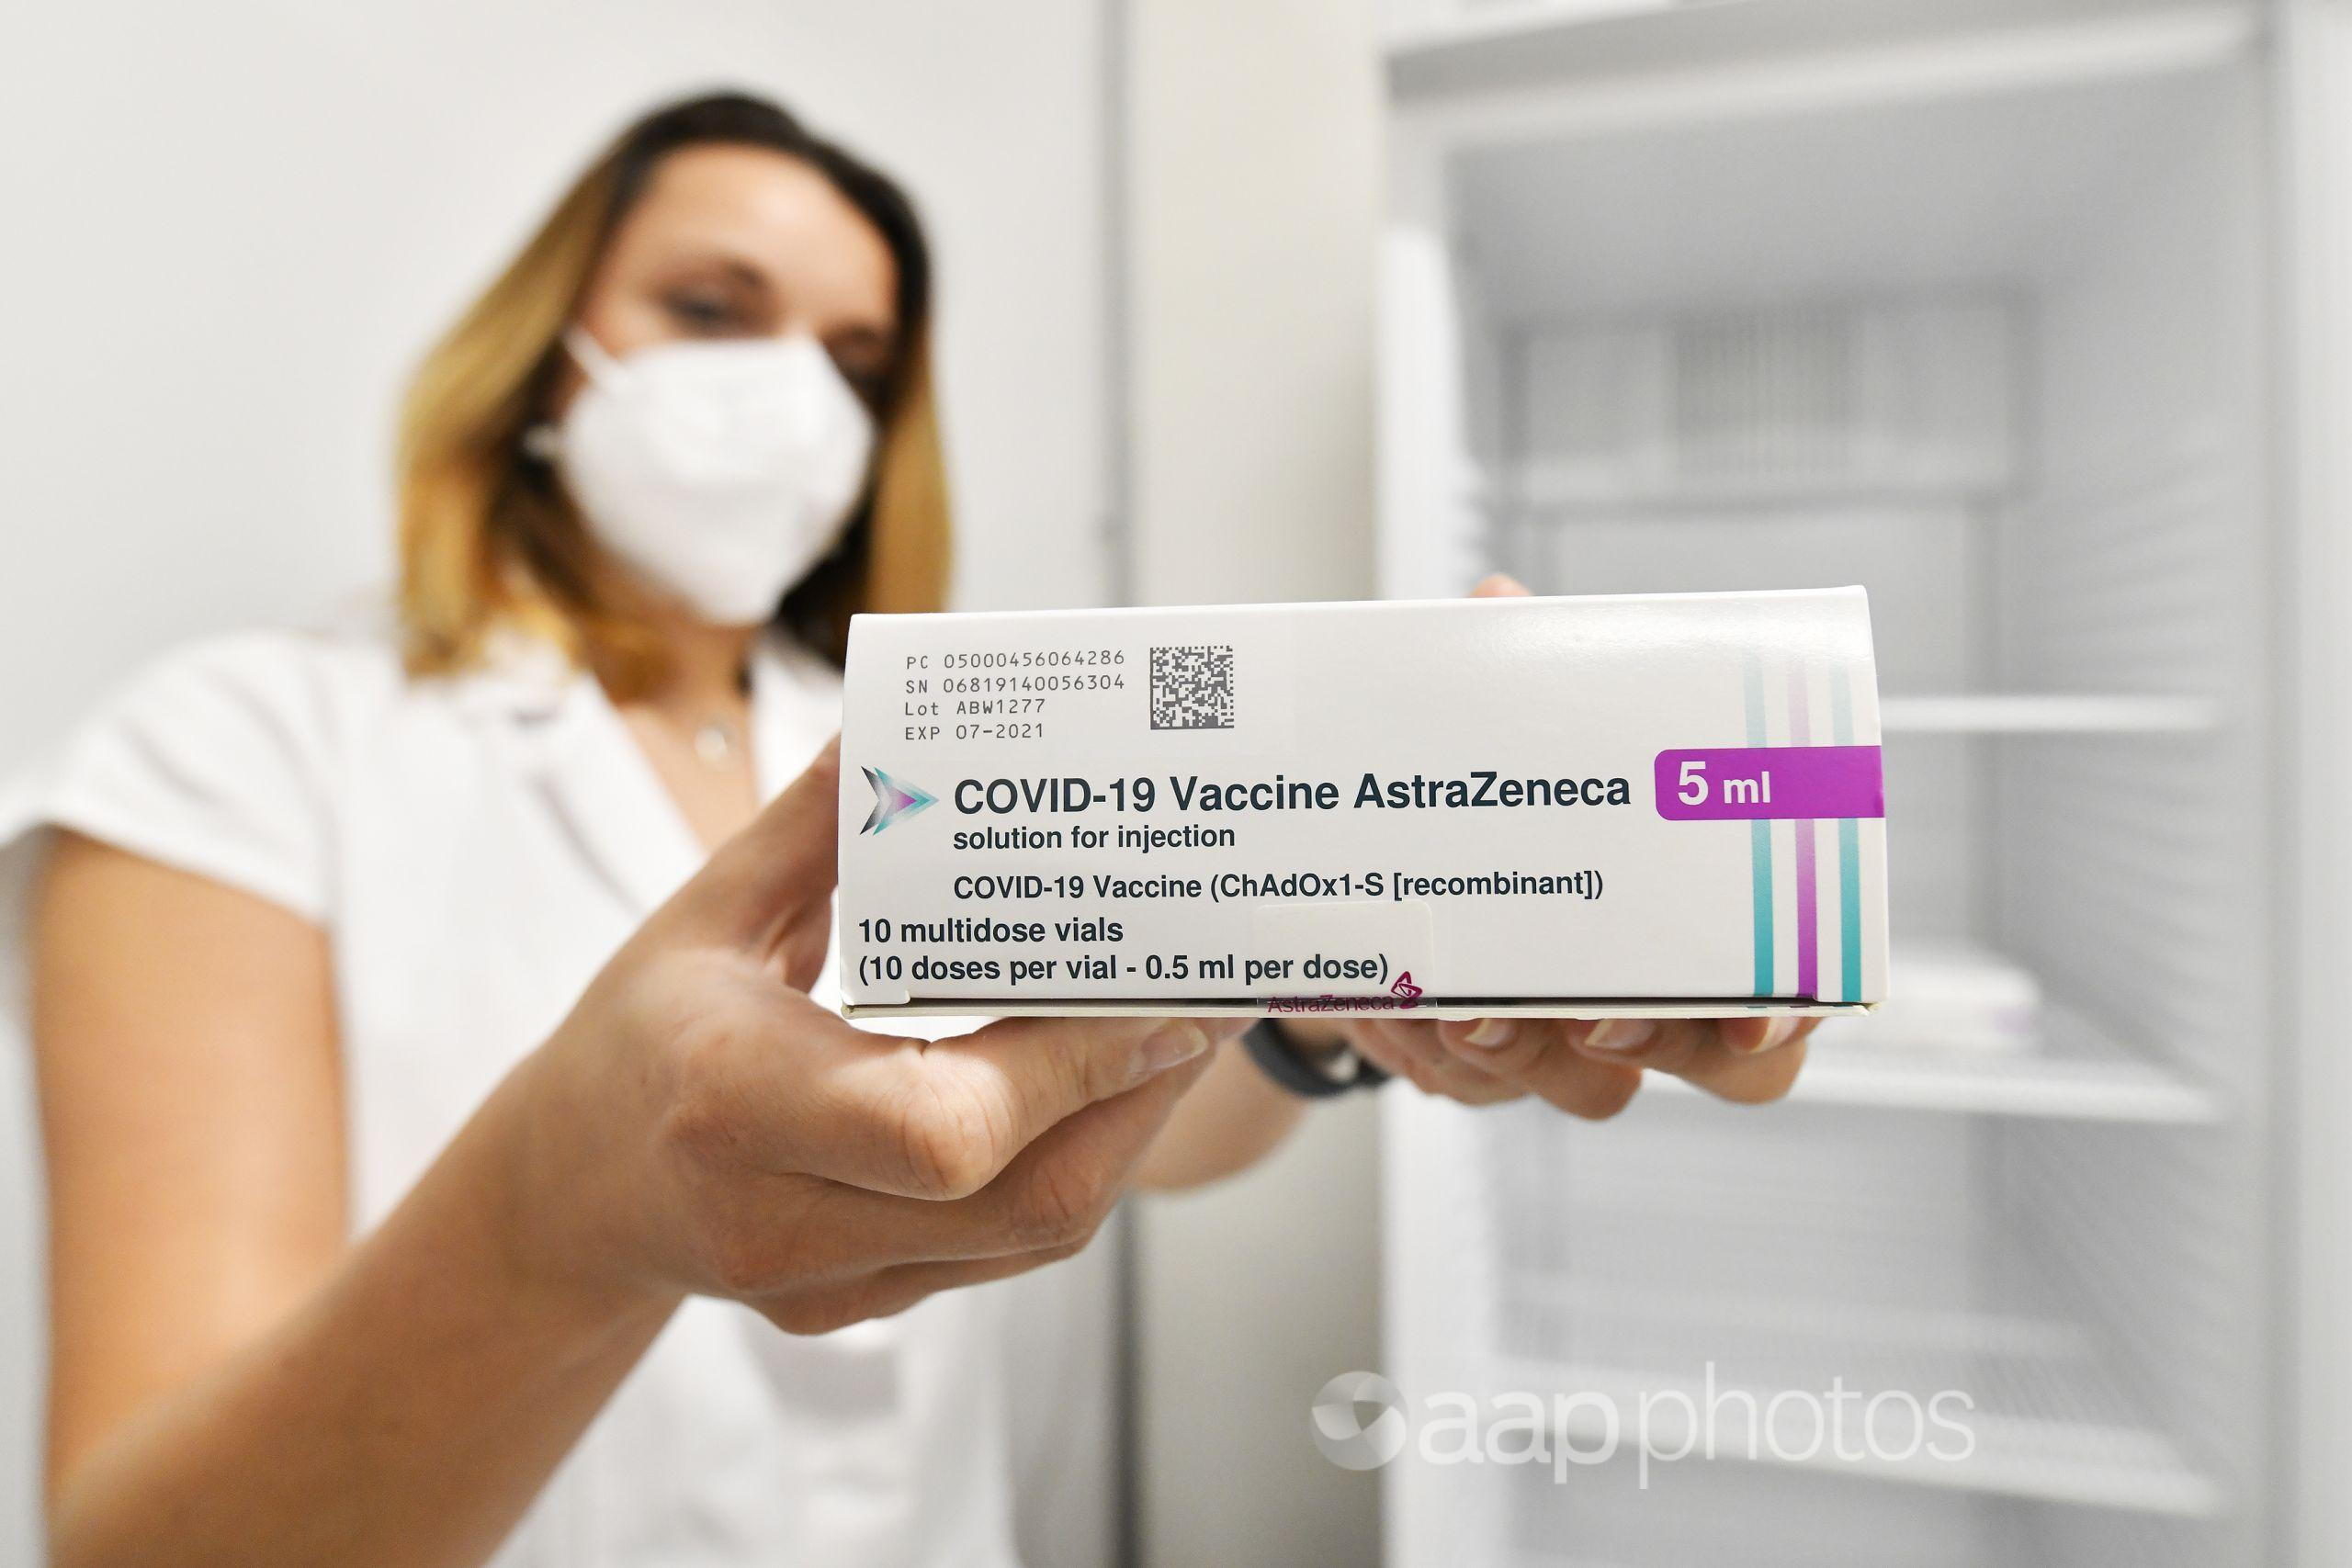 A package of COVID-19 vaccine AstraZeneca.